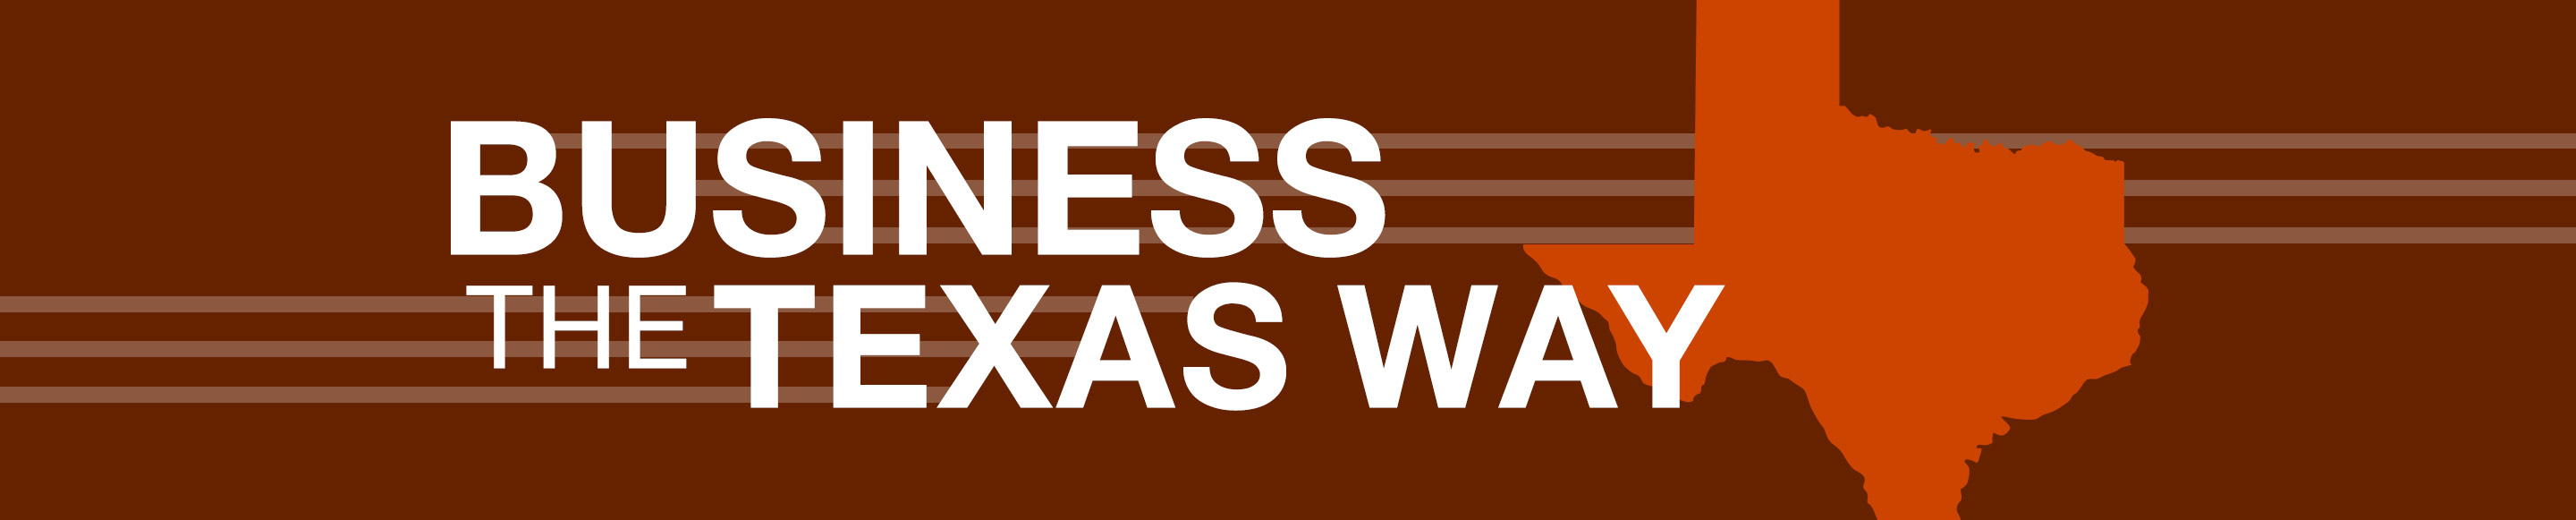 Business the Texas Way Banner - Texas Precious Metals